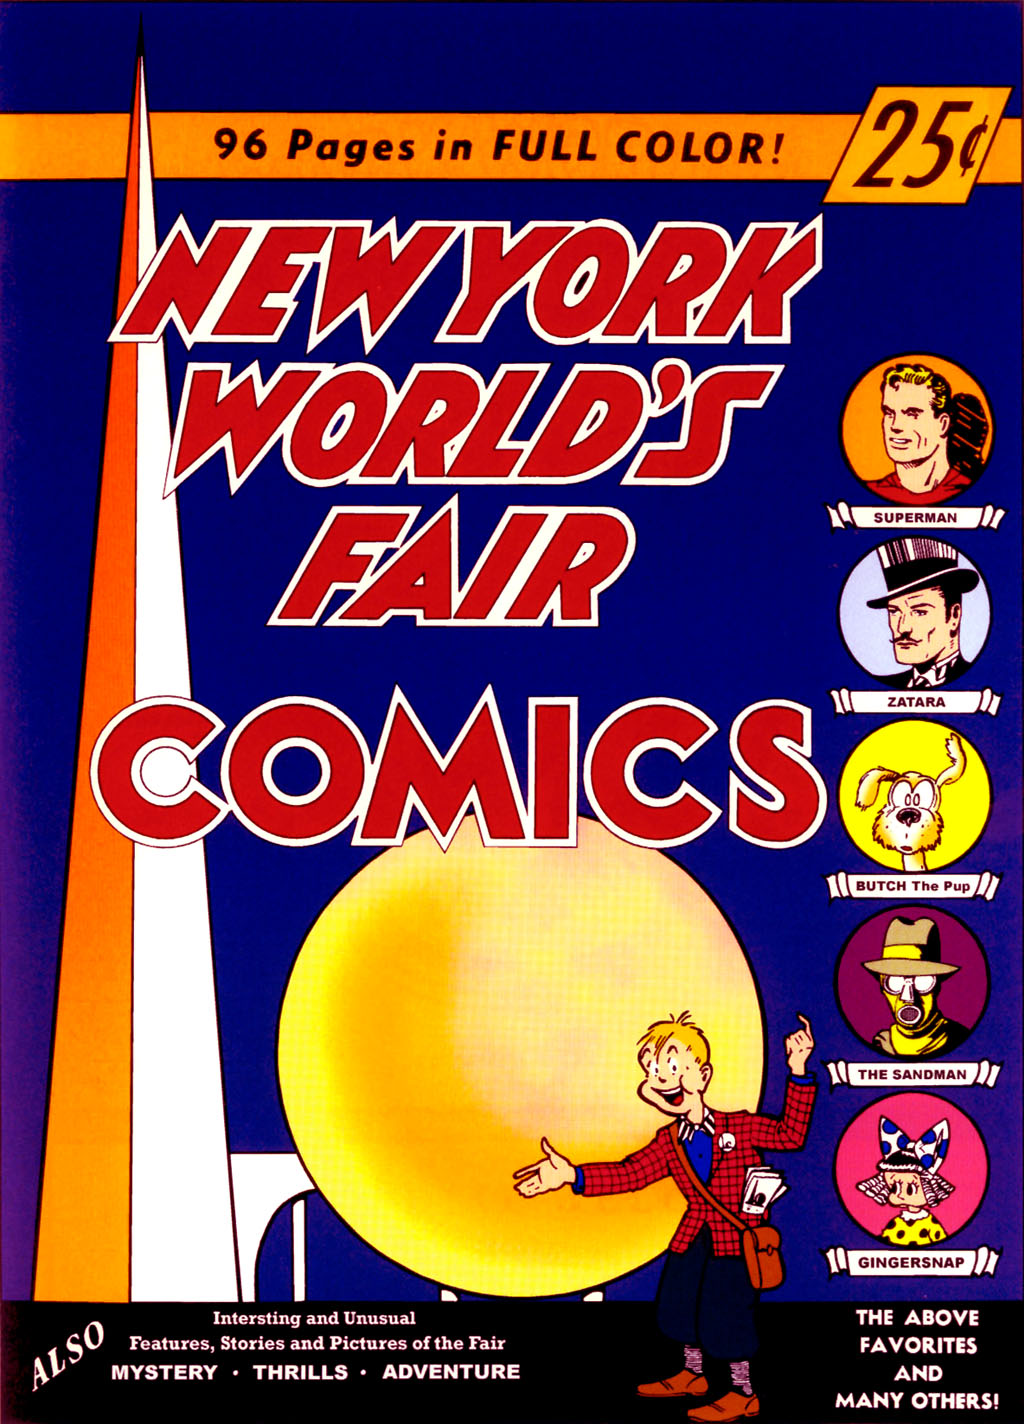 The New York Worlds Fair Comics 1 Page 1